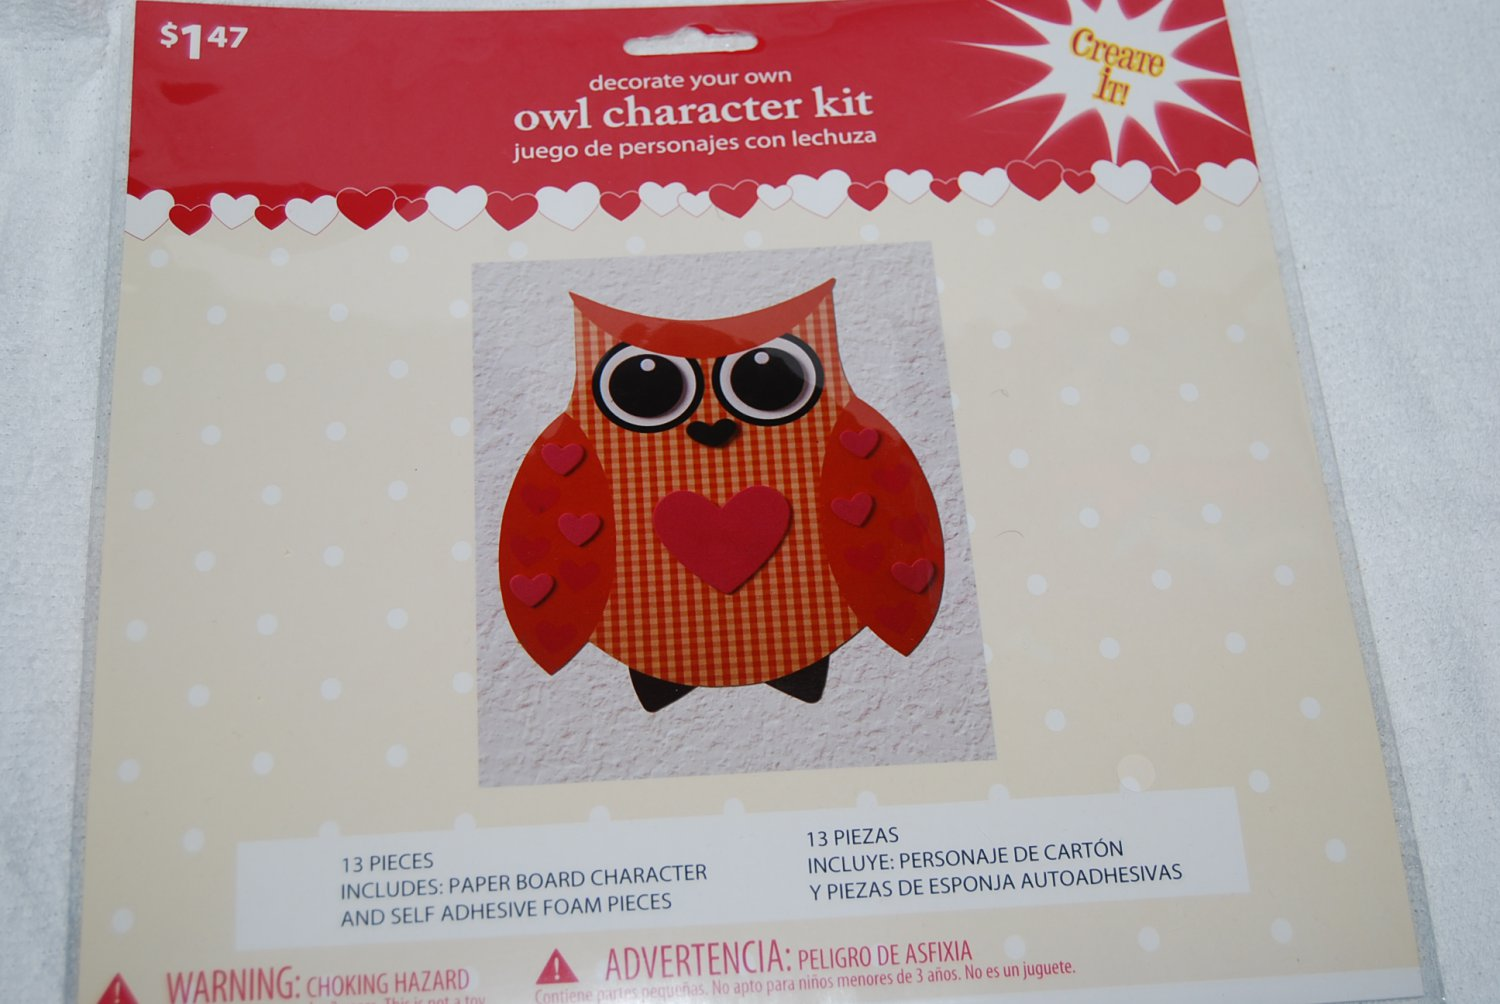 Decorate Your Own Orange Owl Character Kit